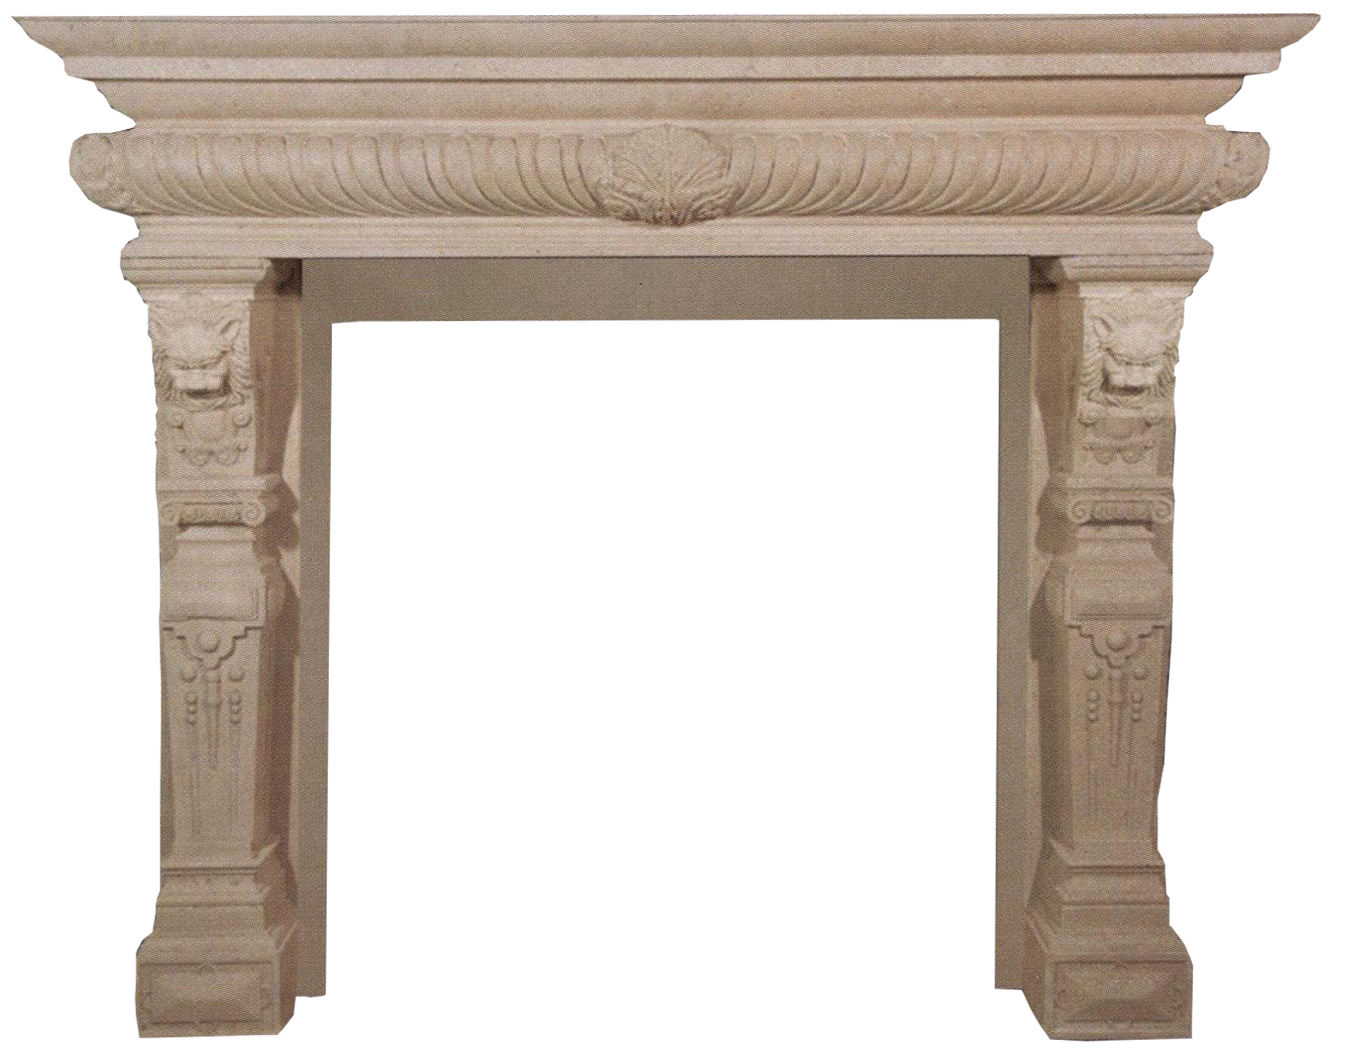 Fireplace clipart fireplace mantle. Florida mantels bulgary clearance